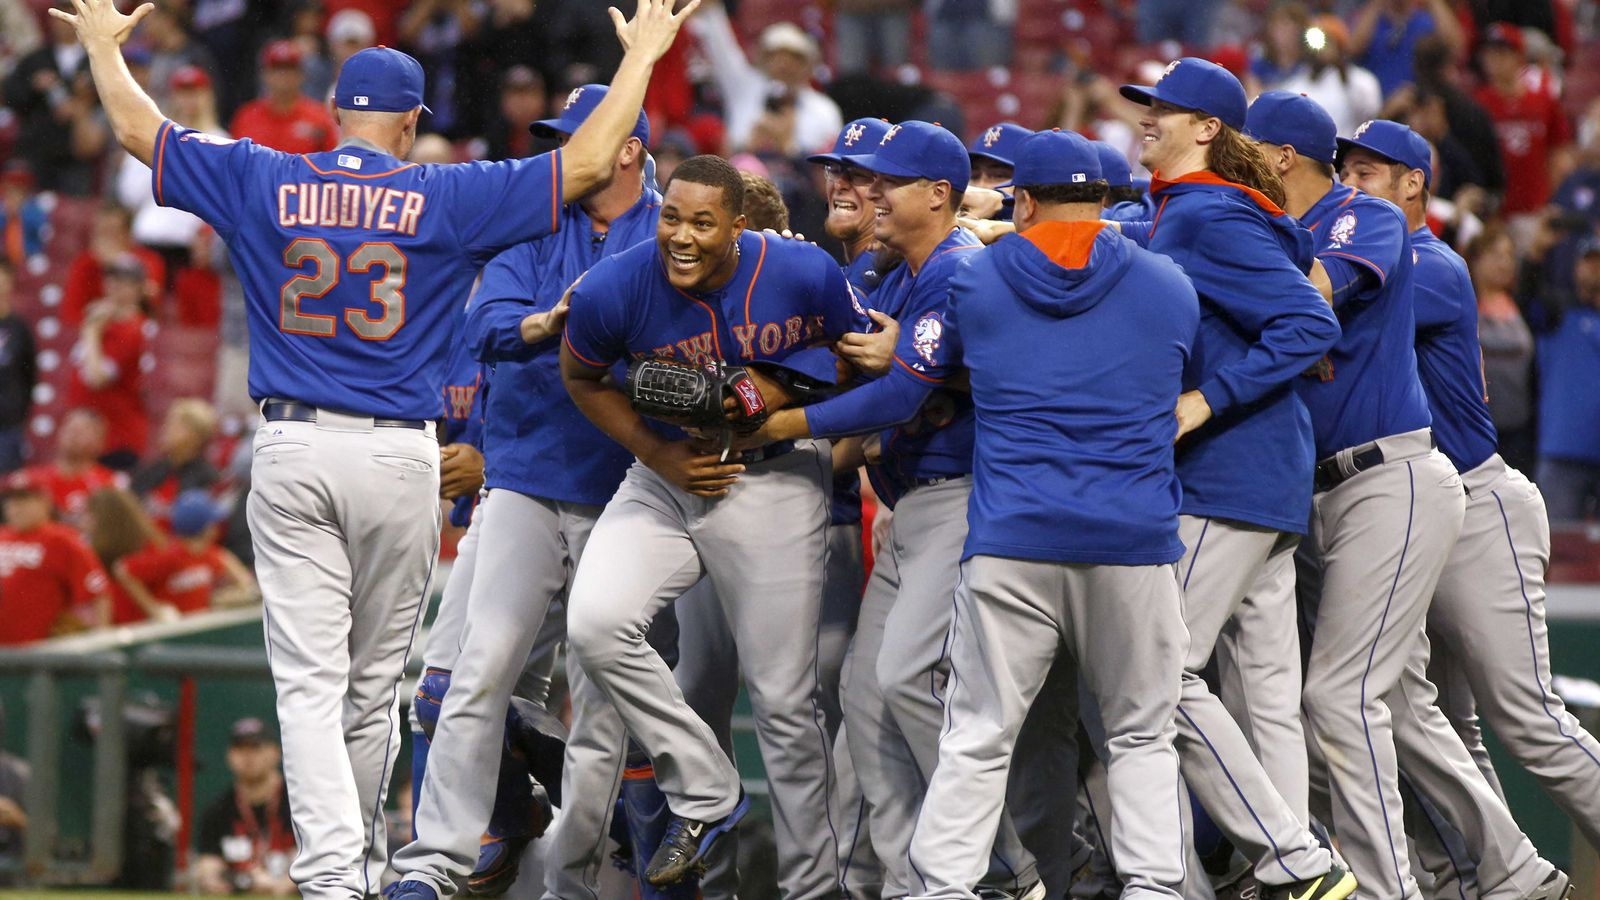 New York Mets Clinch National League East With Win In